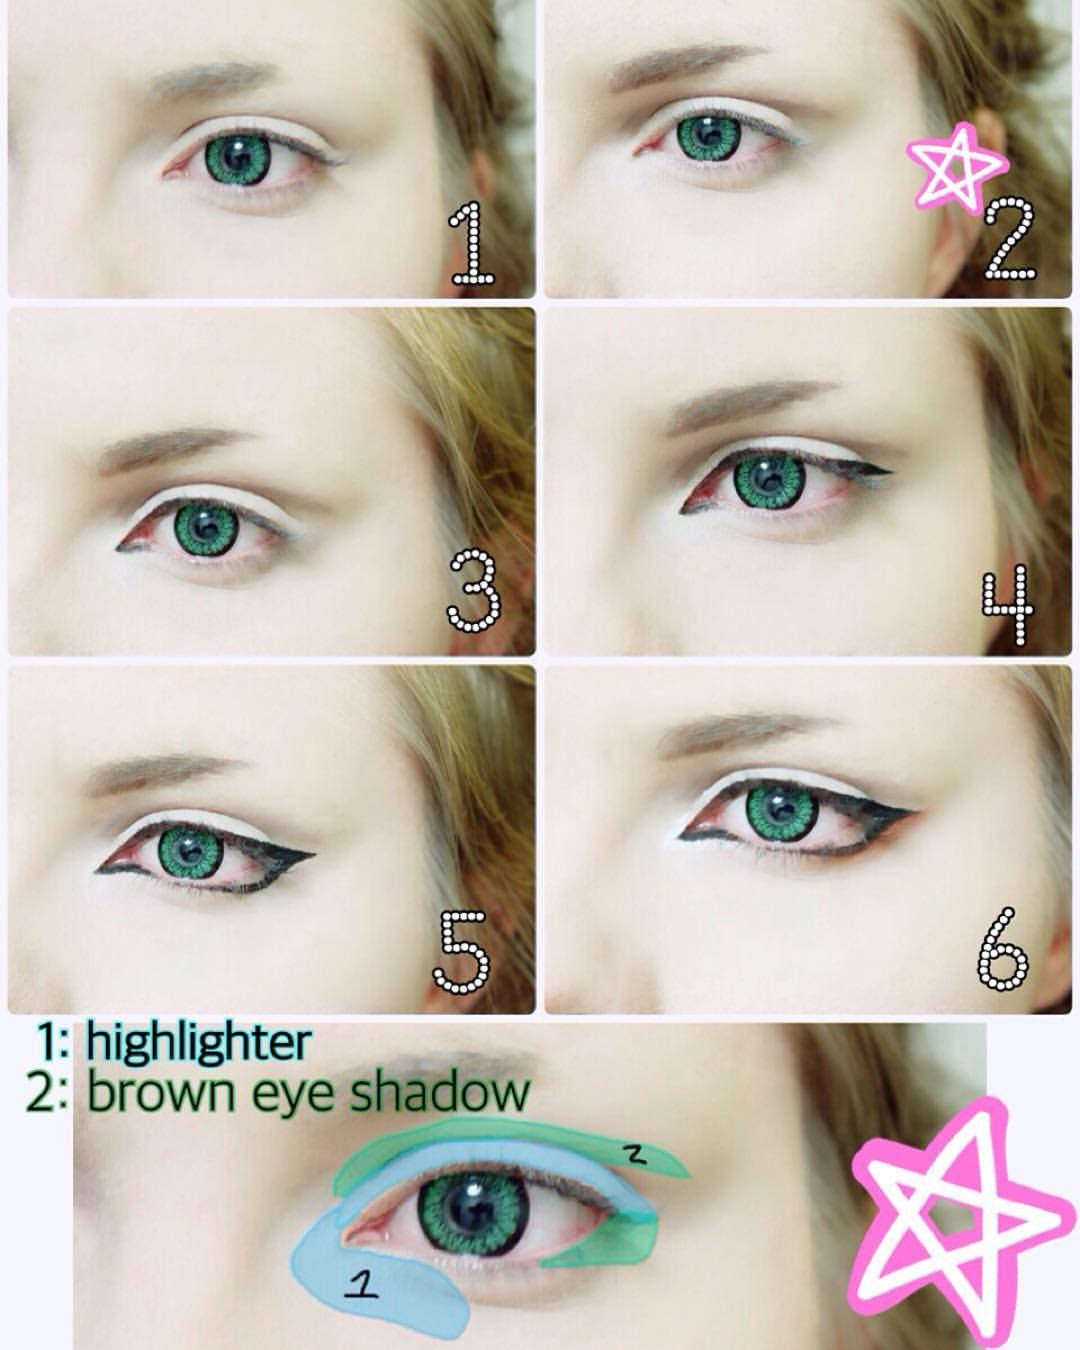 Hey Here S The Anime Eye Makeup Tutorial I Promised I Tried To